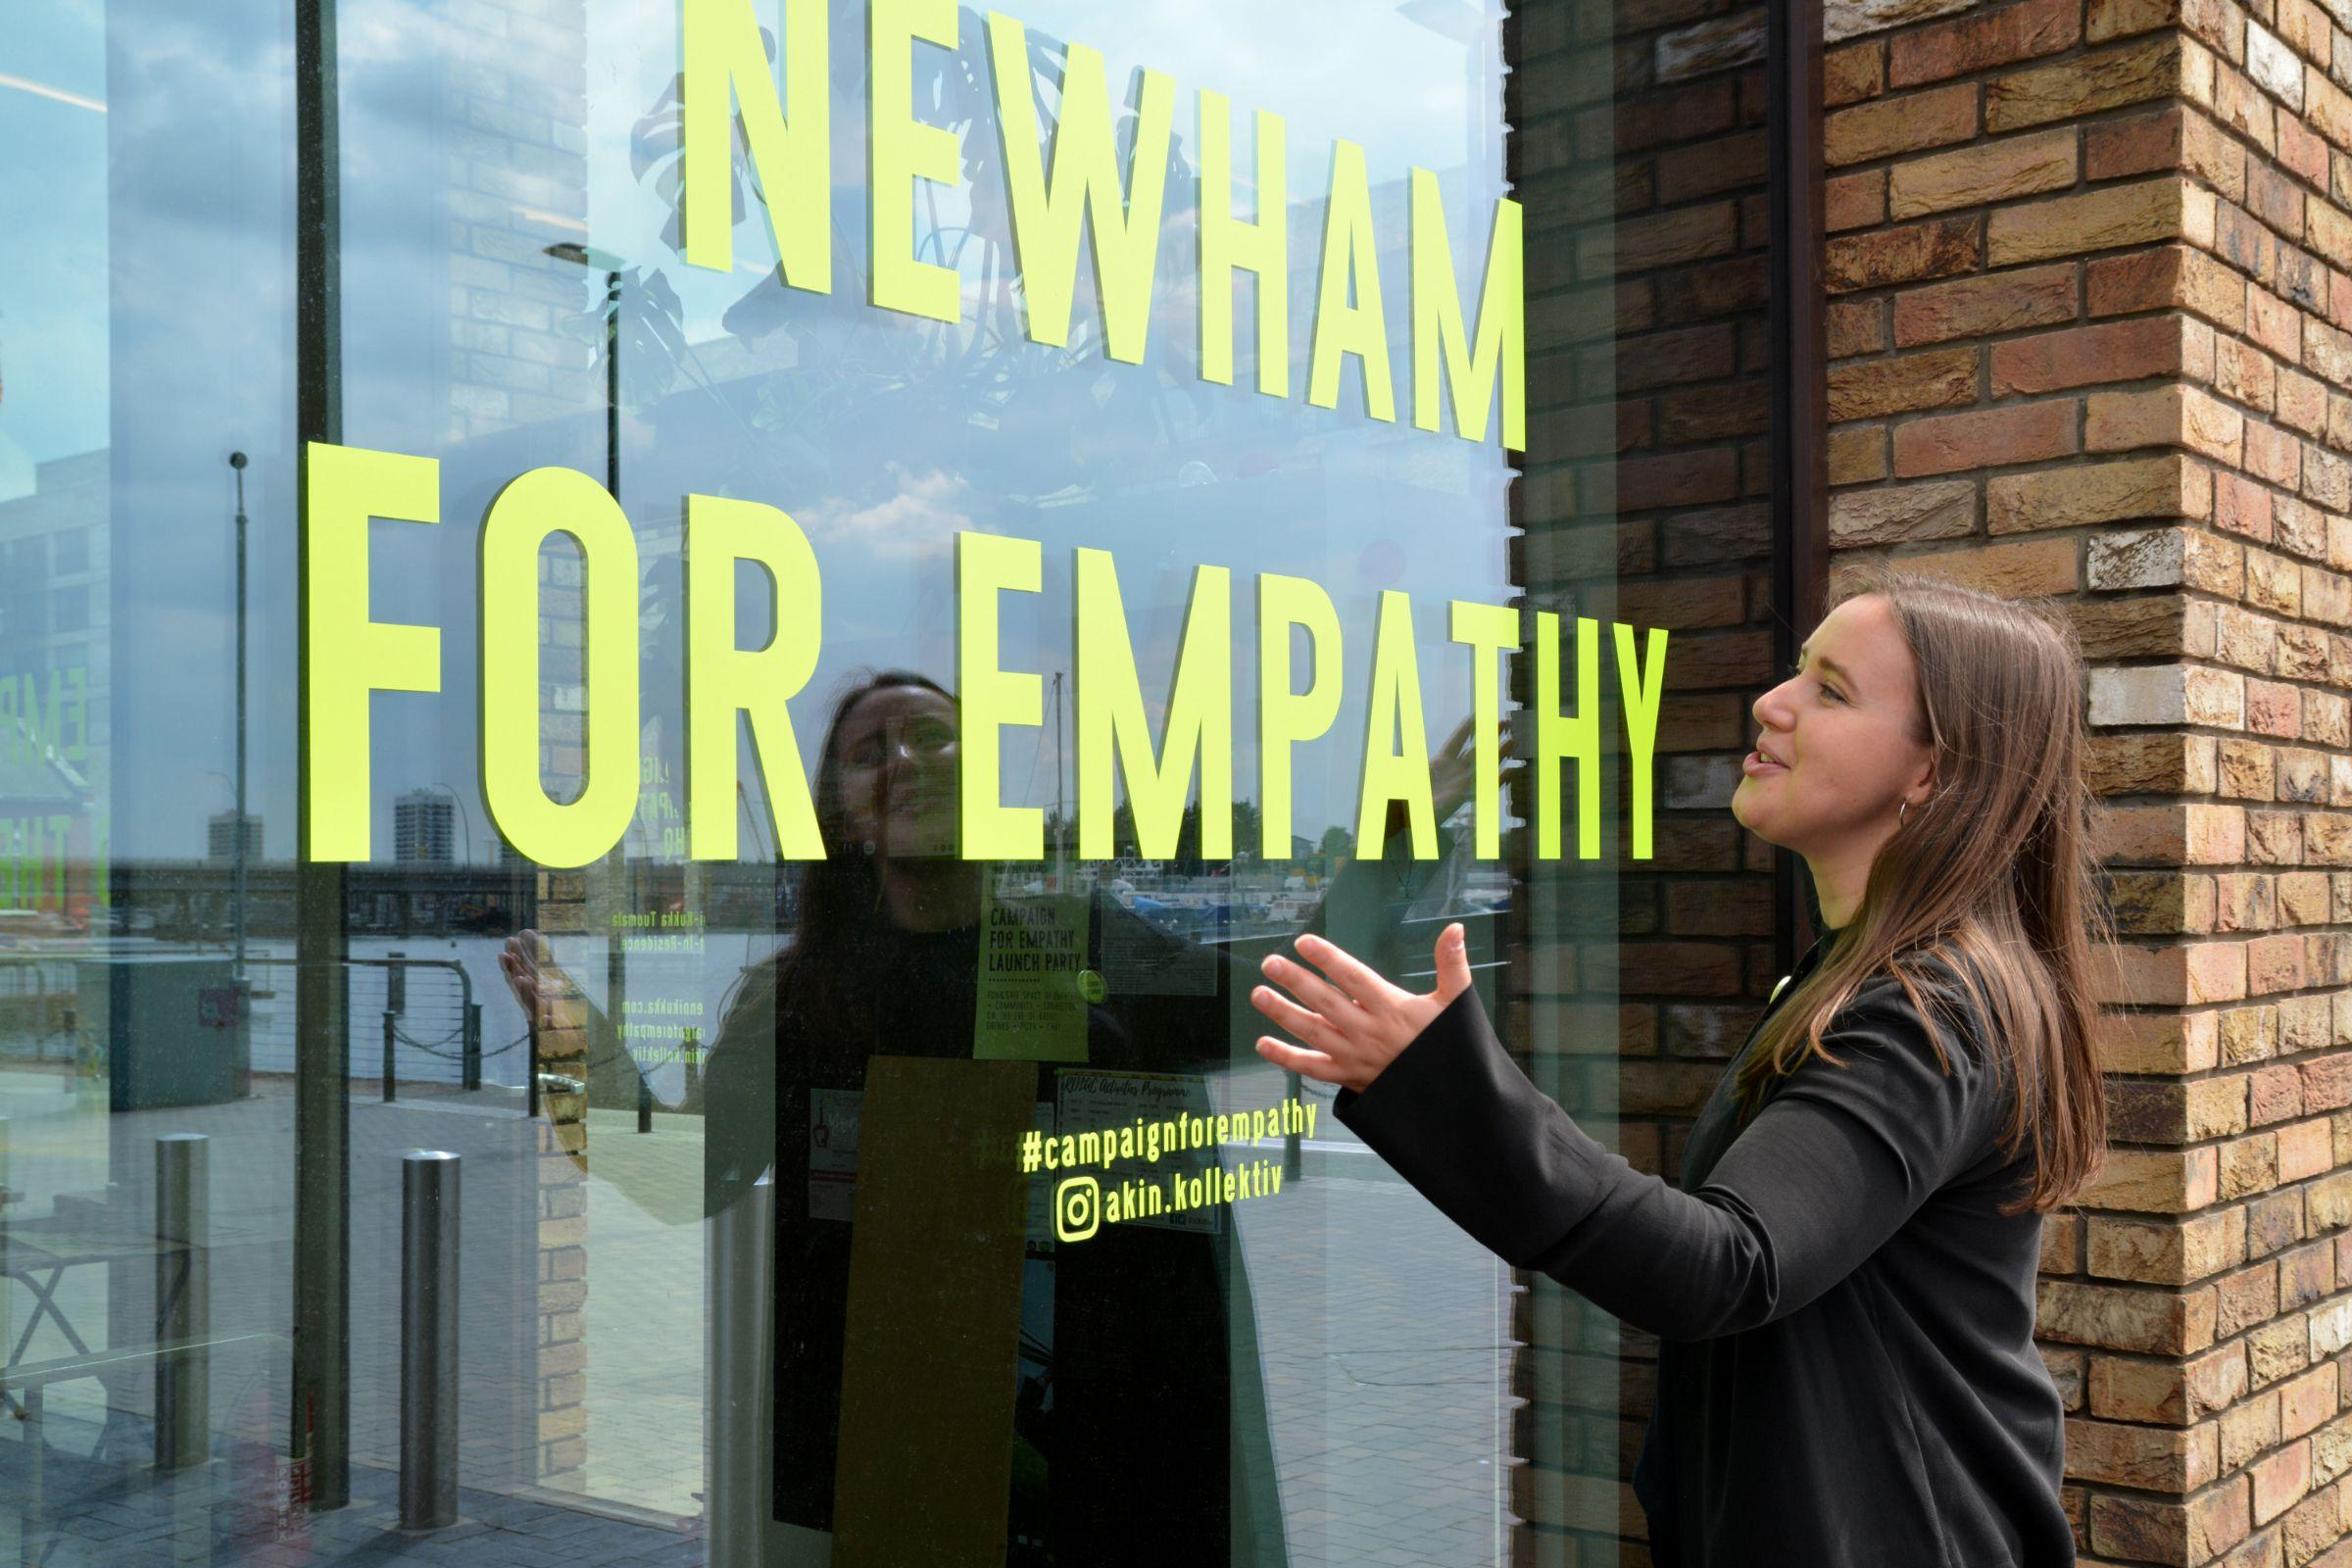 Enni-Kukka Tuomala in front of Newham For Empathy window sign